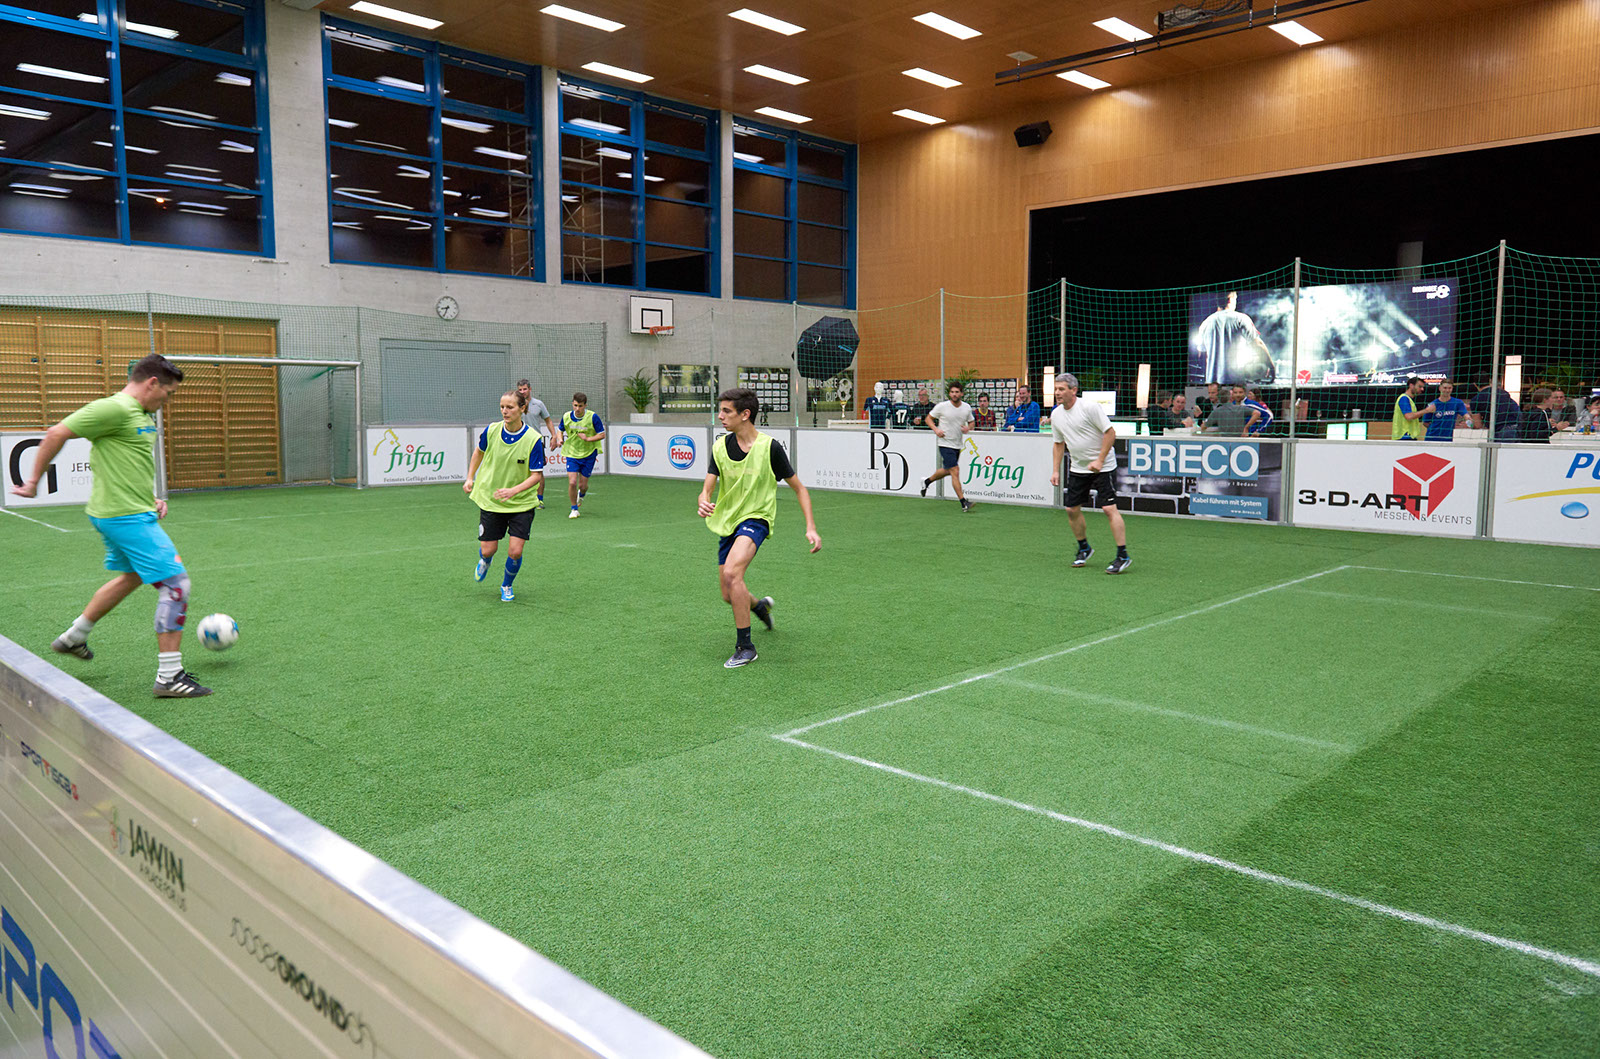 Bodensee-Cup_20171110_214122.jpg